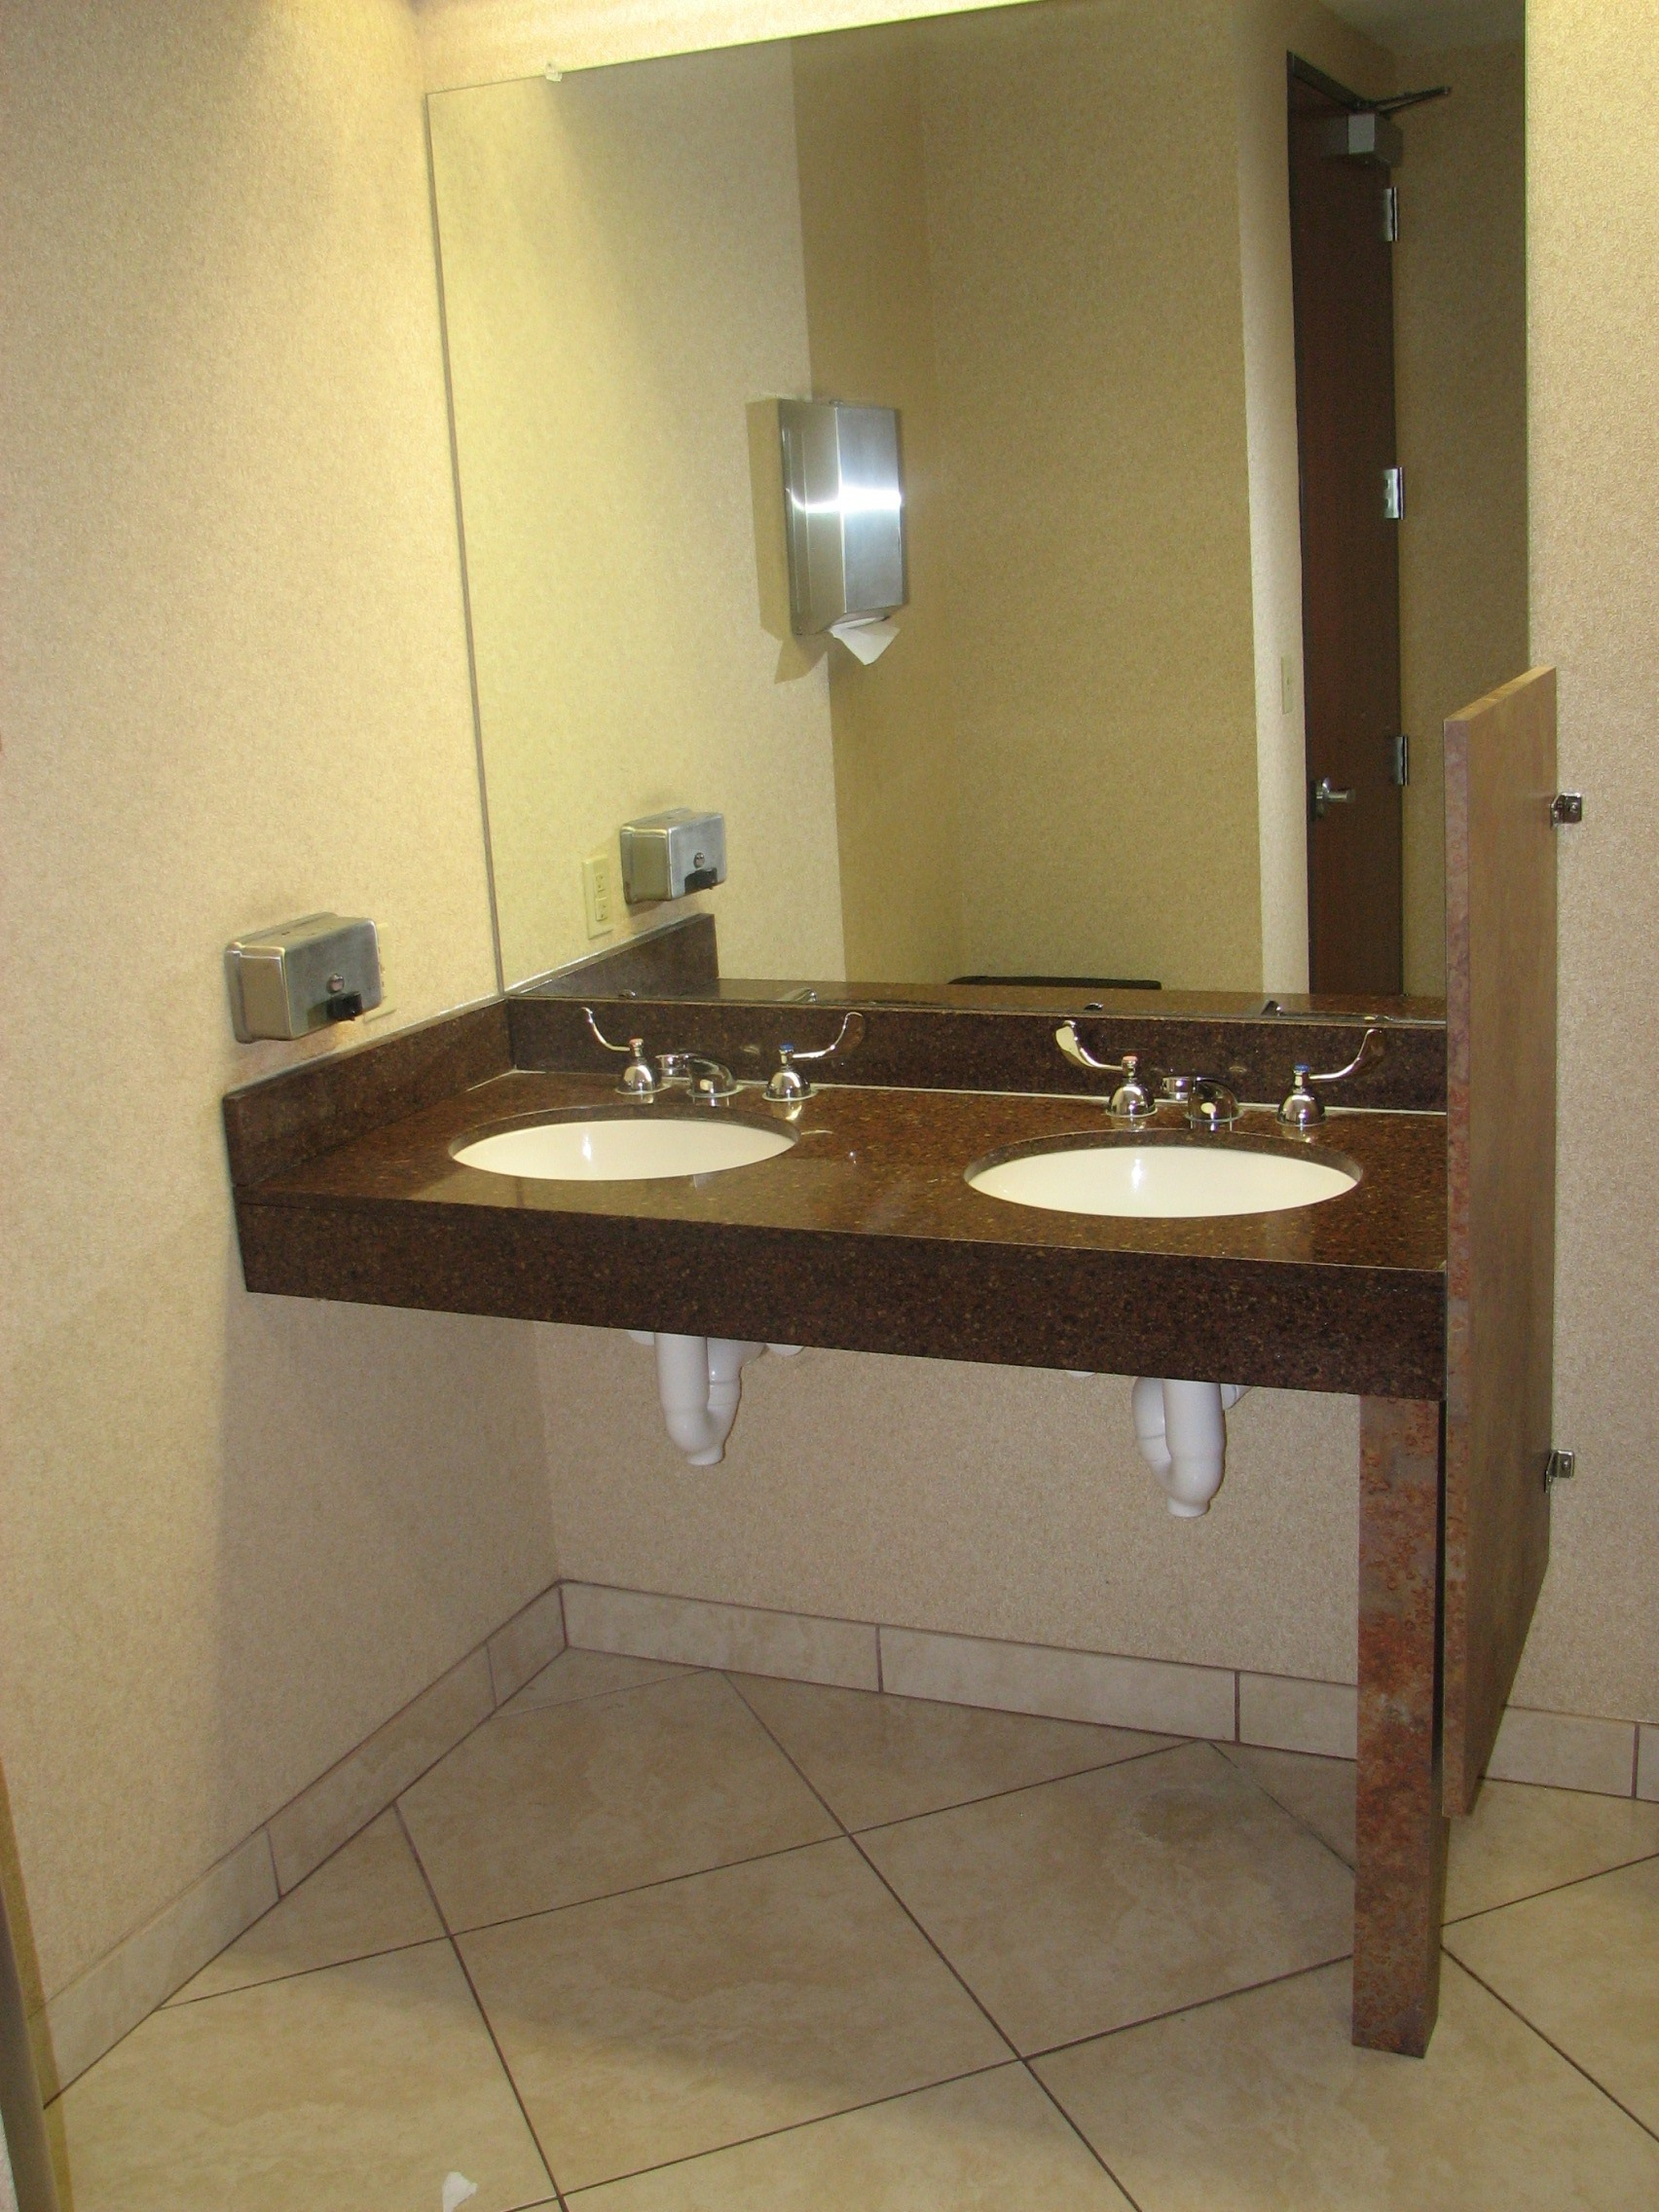 Handicap Bathroom Remodel Commercial Bathroom Remodeling In Austin Texas